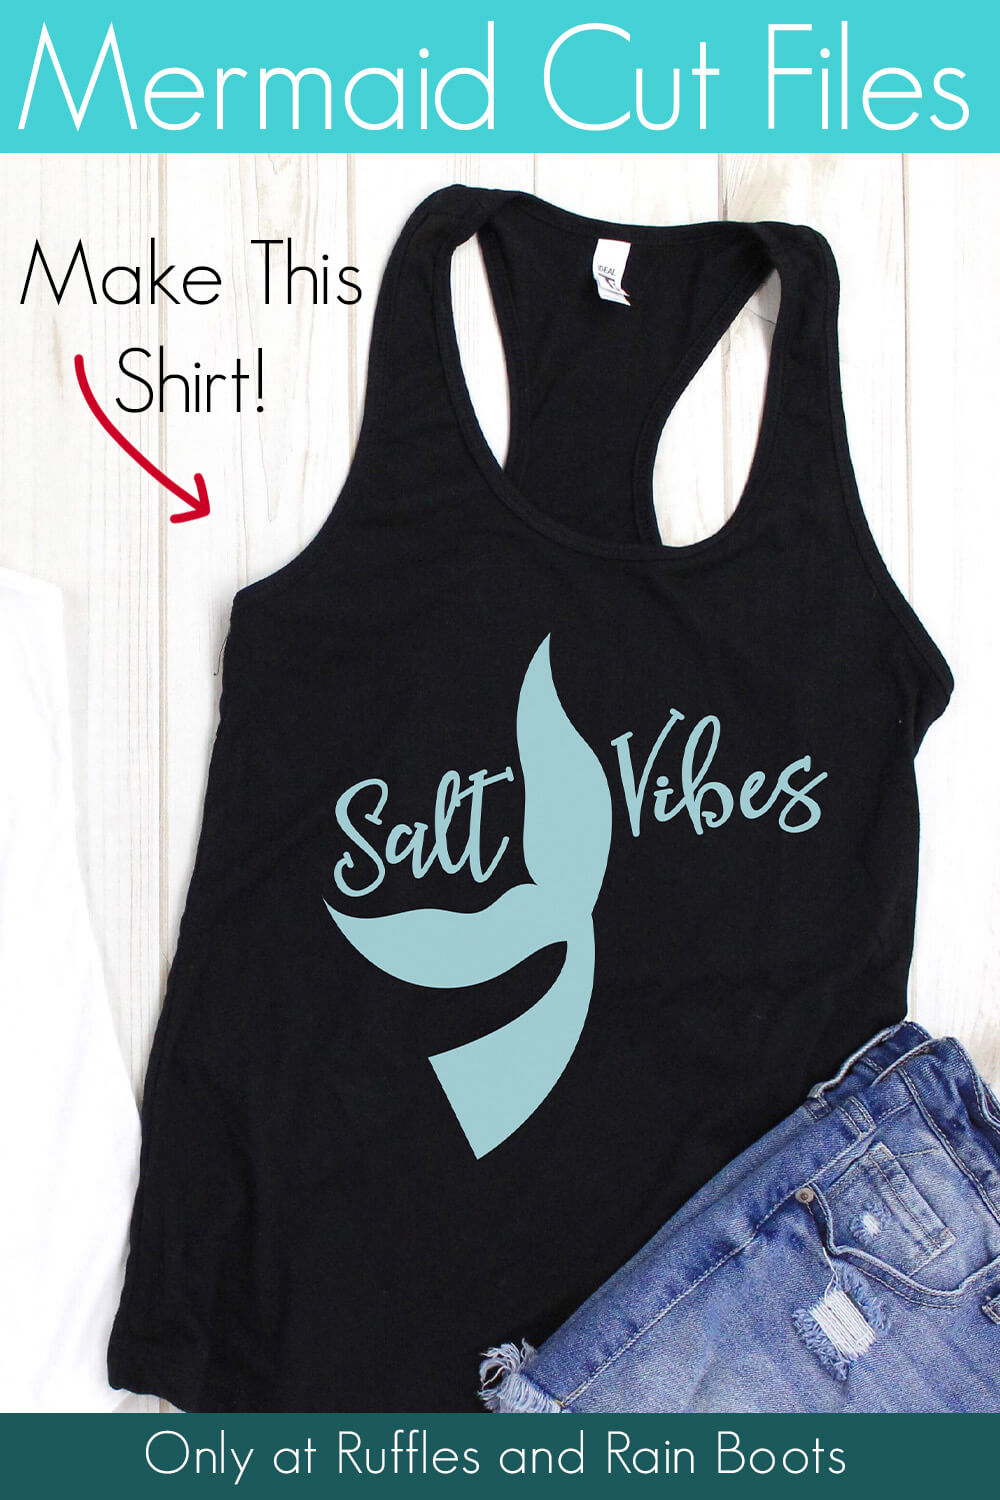 salt vibes free mermaid cut file for cricut on a black tank top with jean shorts on a white background with text which reads mermaid cut files make this shirt!